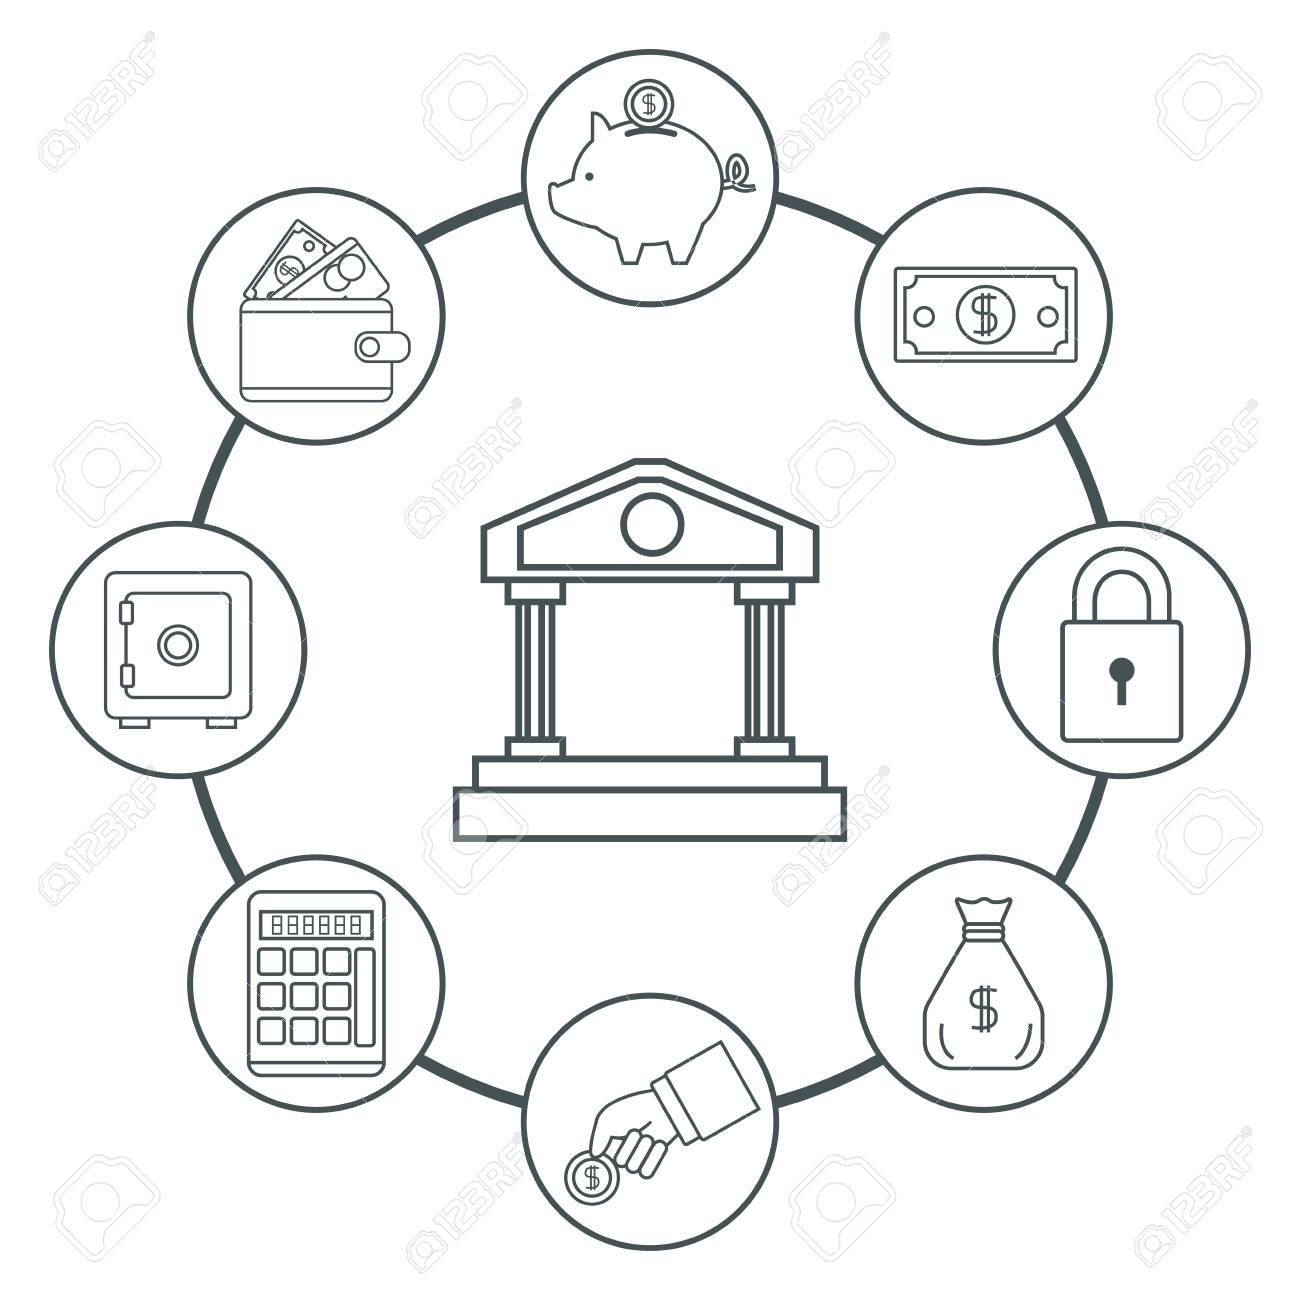 Money certificate of deposit icon vector illustration graphic money certificate of deposit icon vector illustration graphic design stock vector 88371647 1betcityfo Images